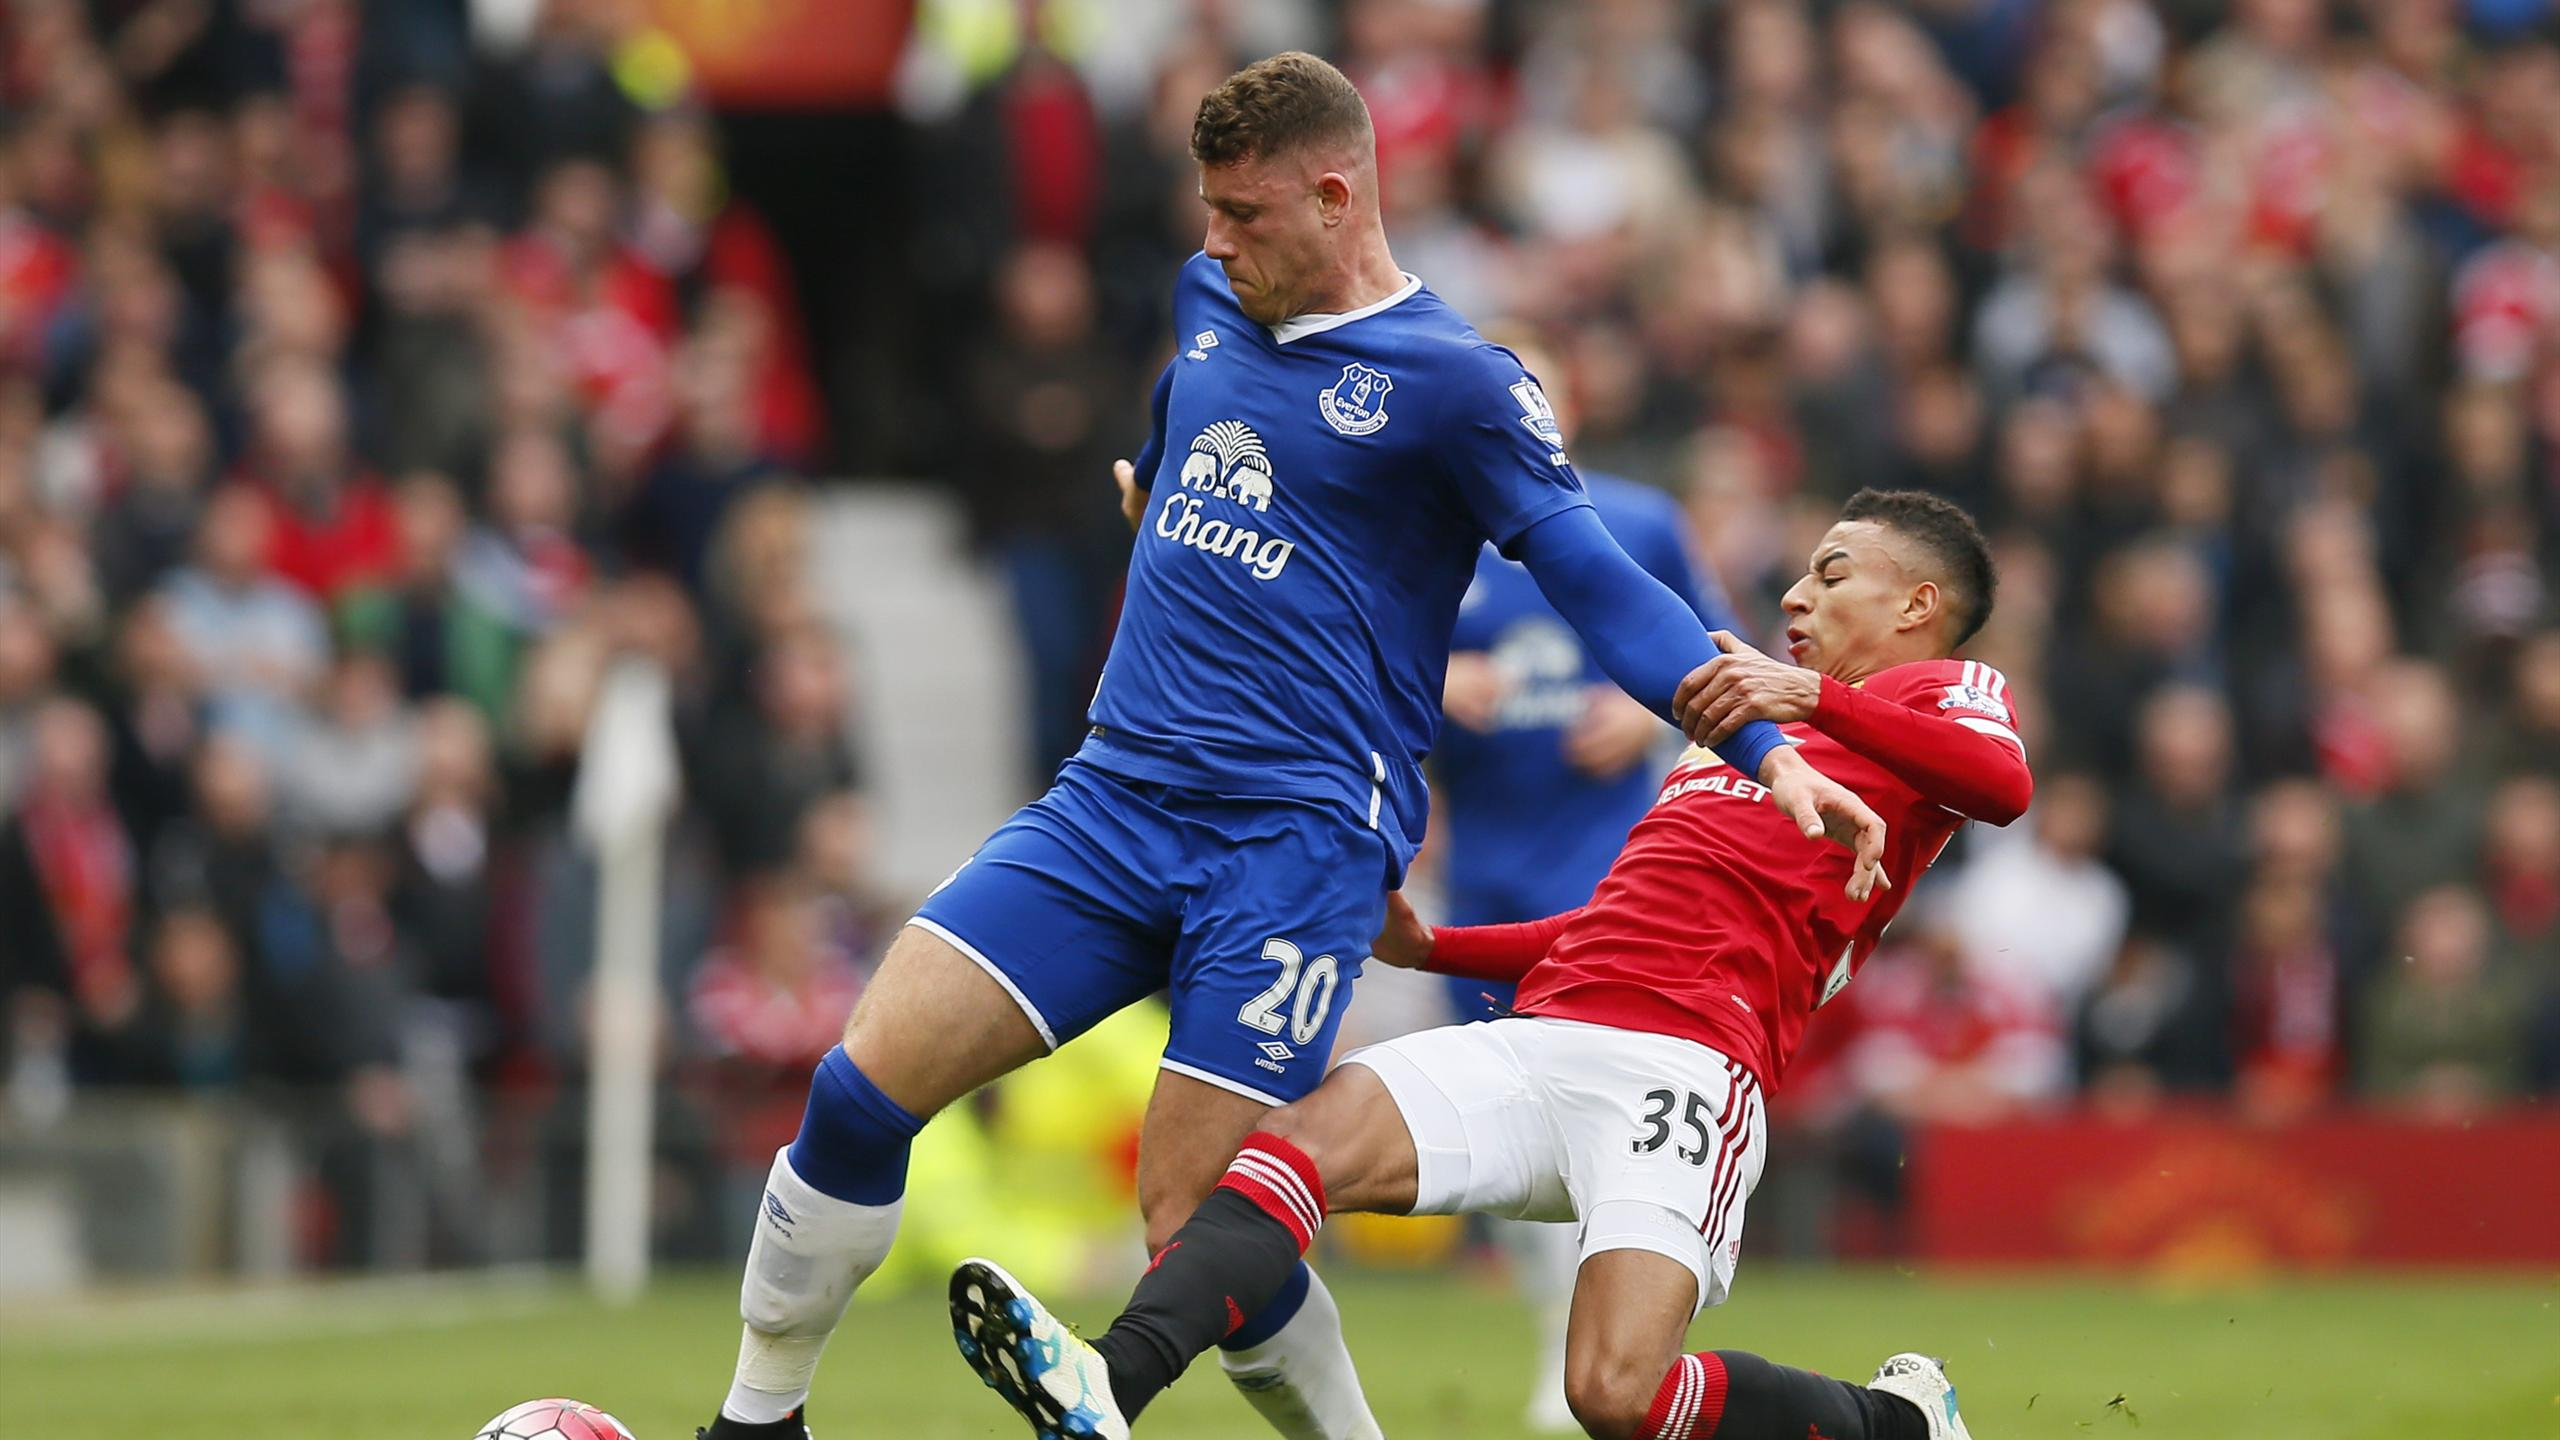 Everton's Ross Barkley in action with Manchester United's Jesse Lingard